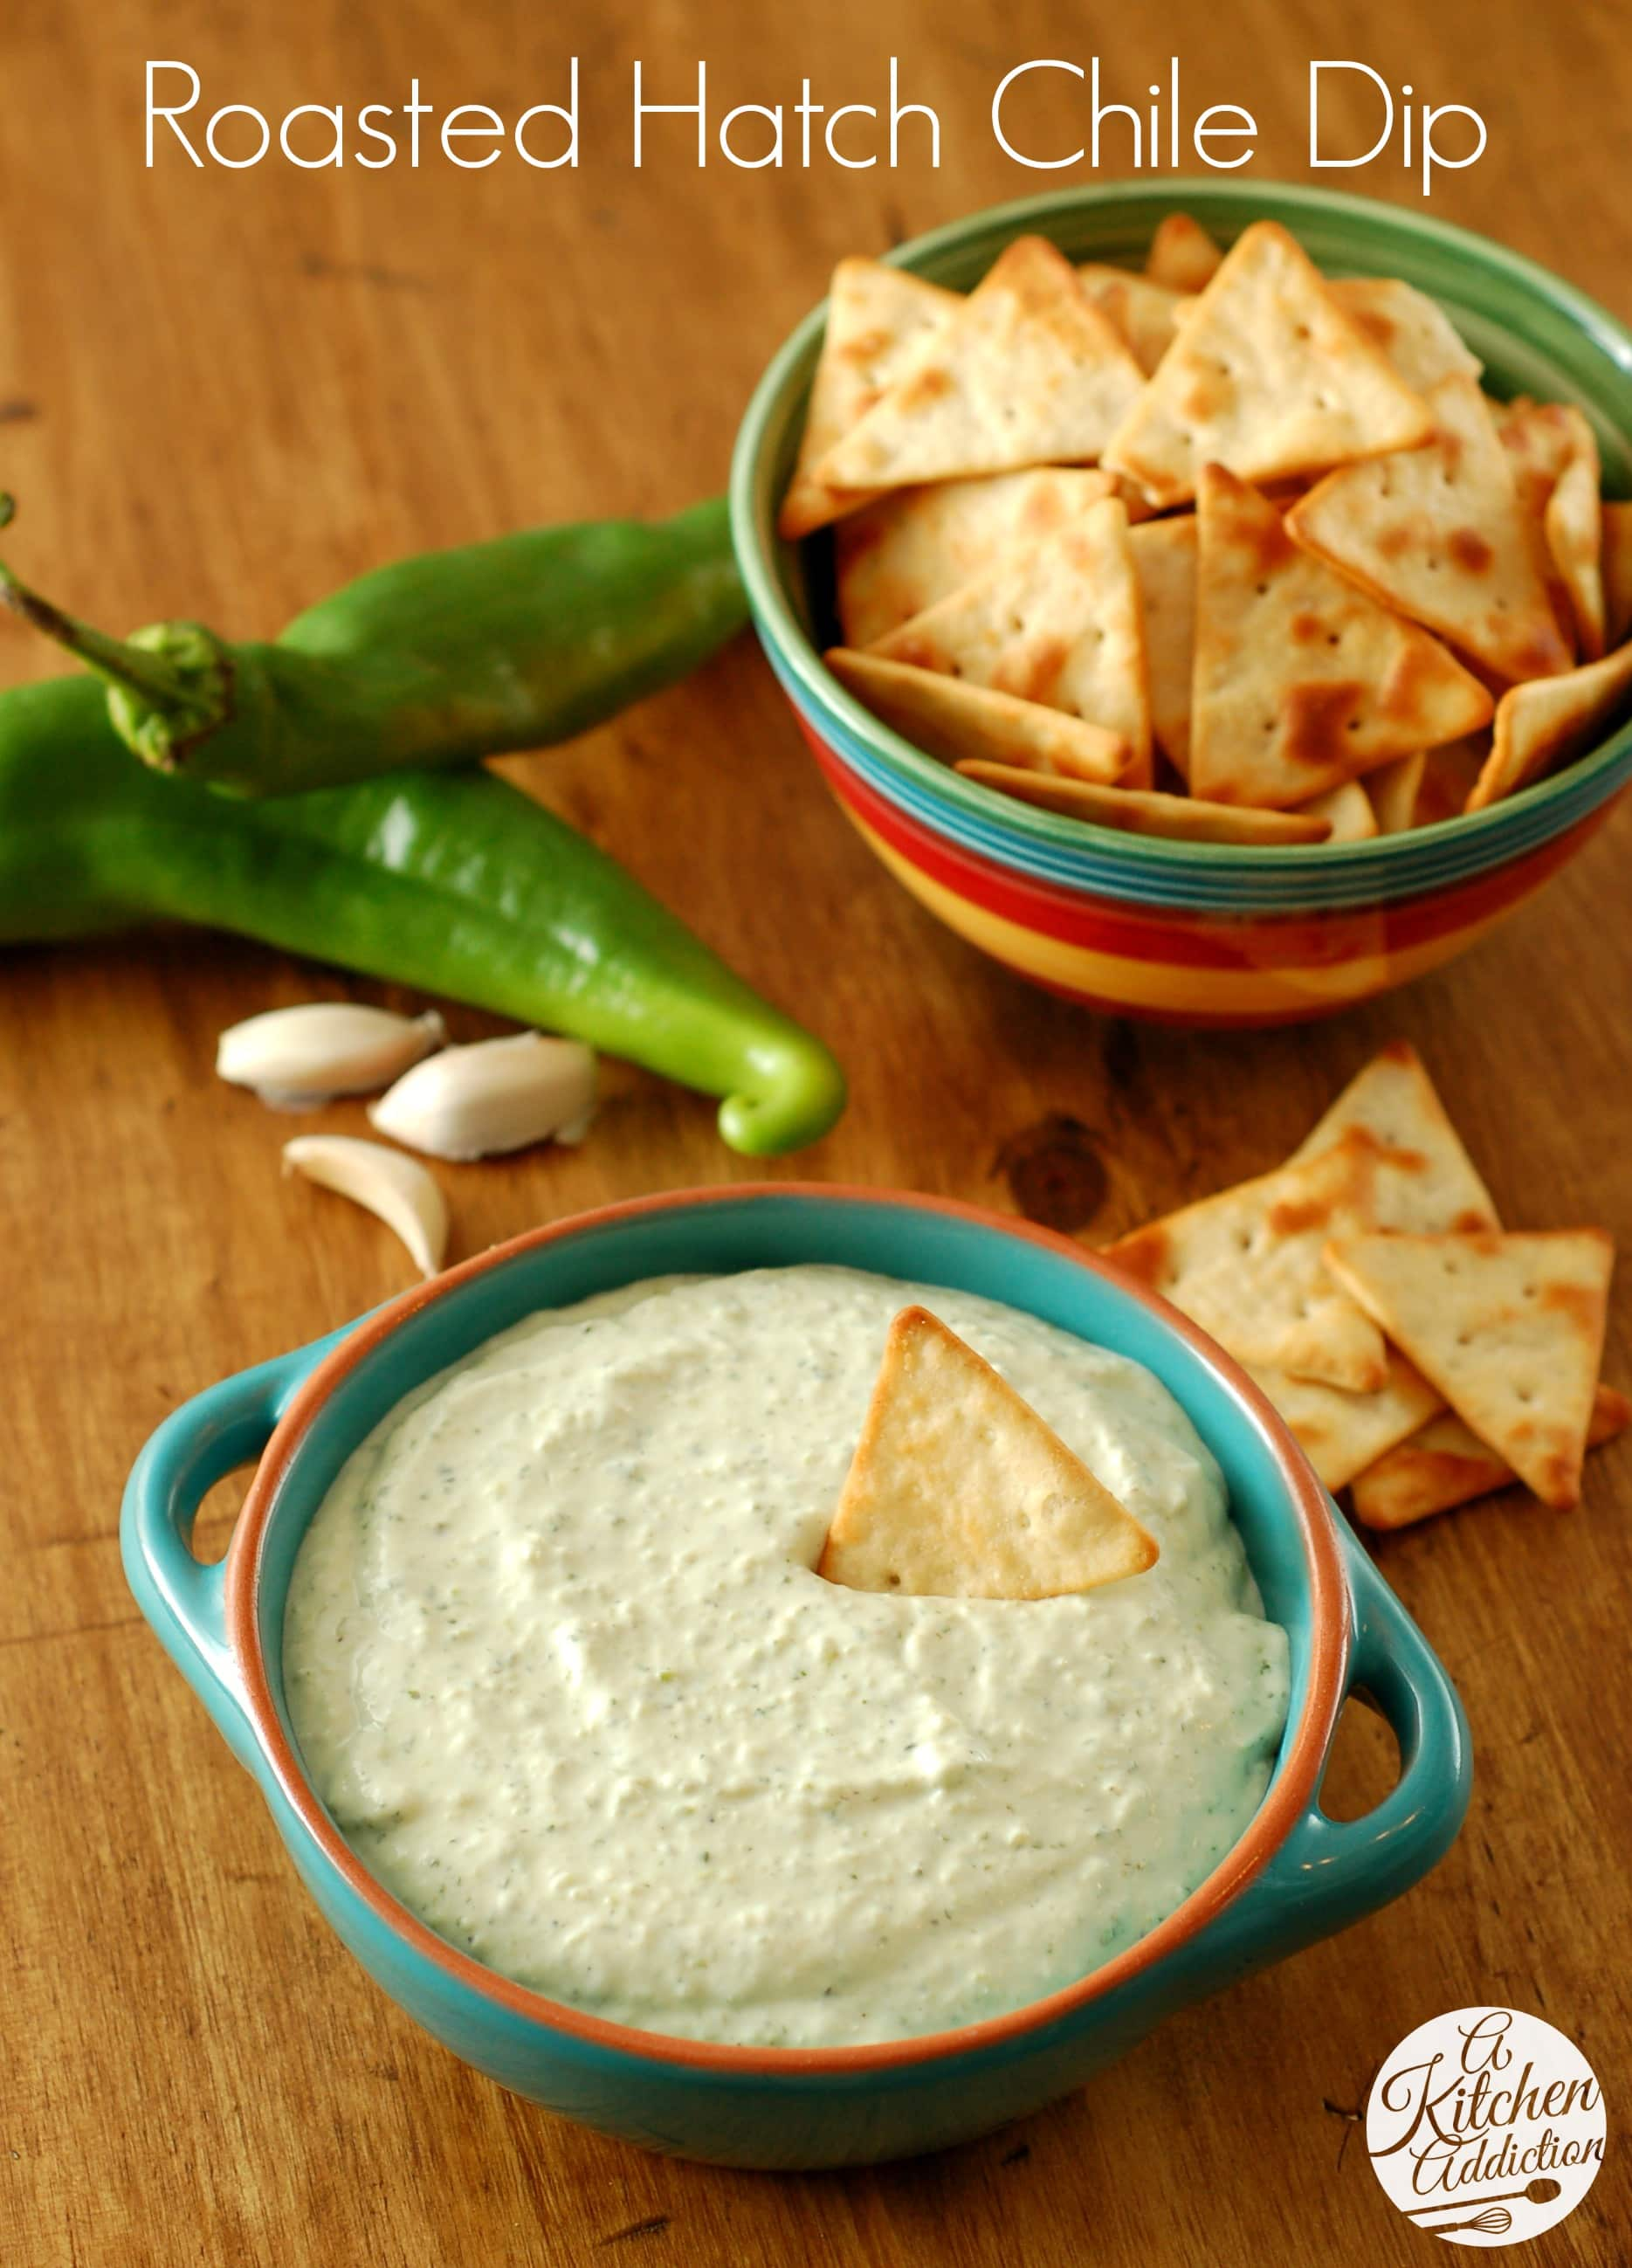 Creamy Roasted Hatch Chile Dip Recipe from A Kitchen Addiction